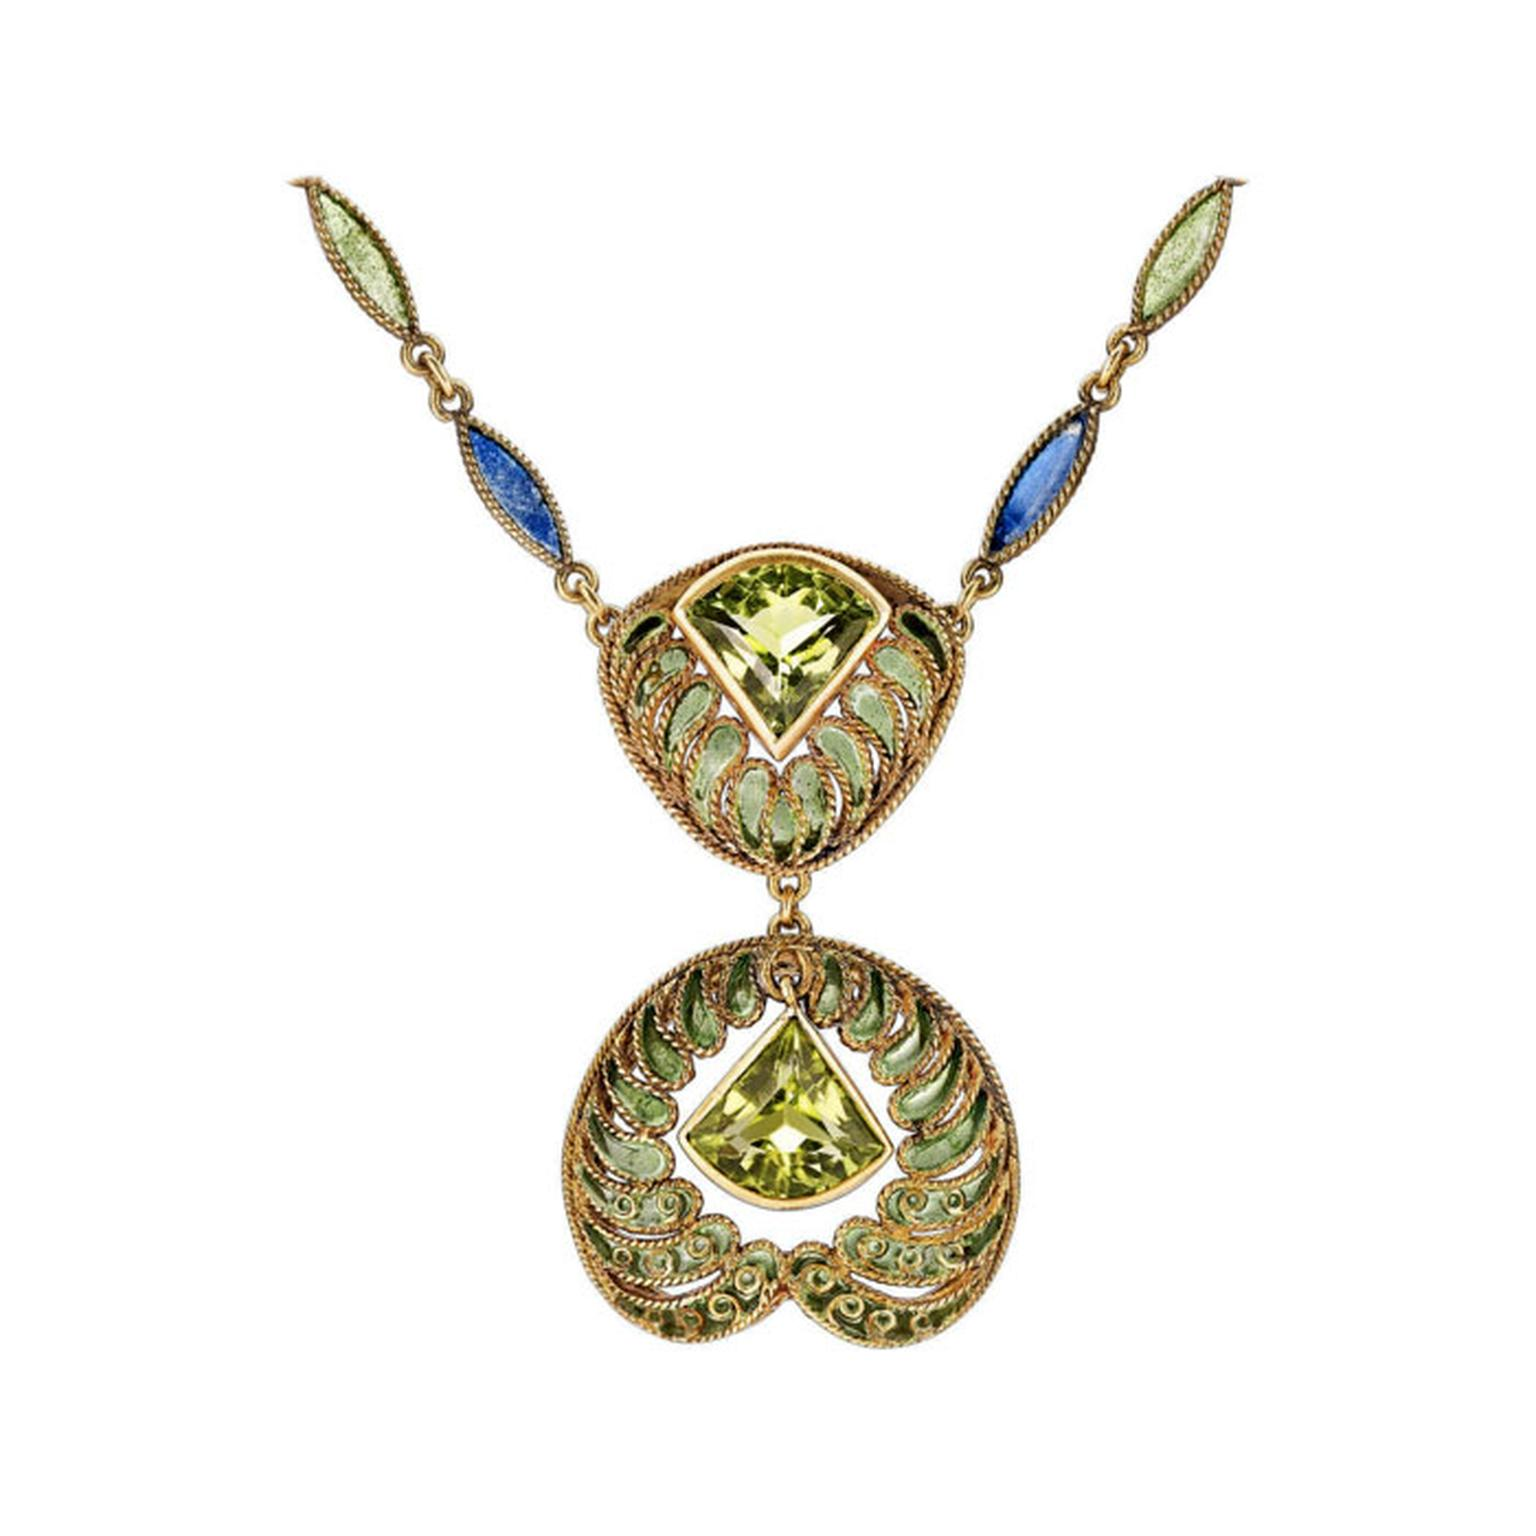 Tiffany & Co. enamel peridot necklace from 1stdibs